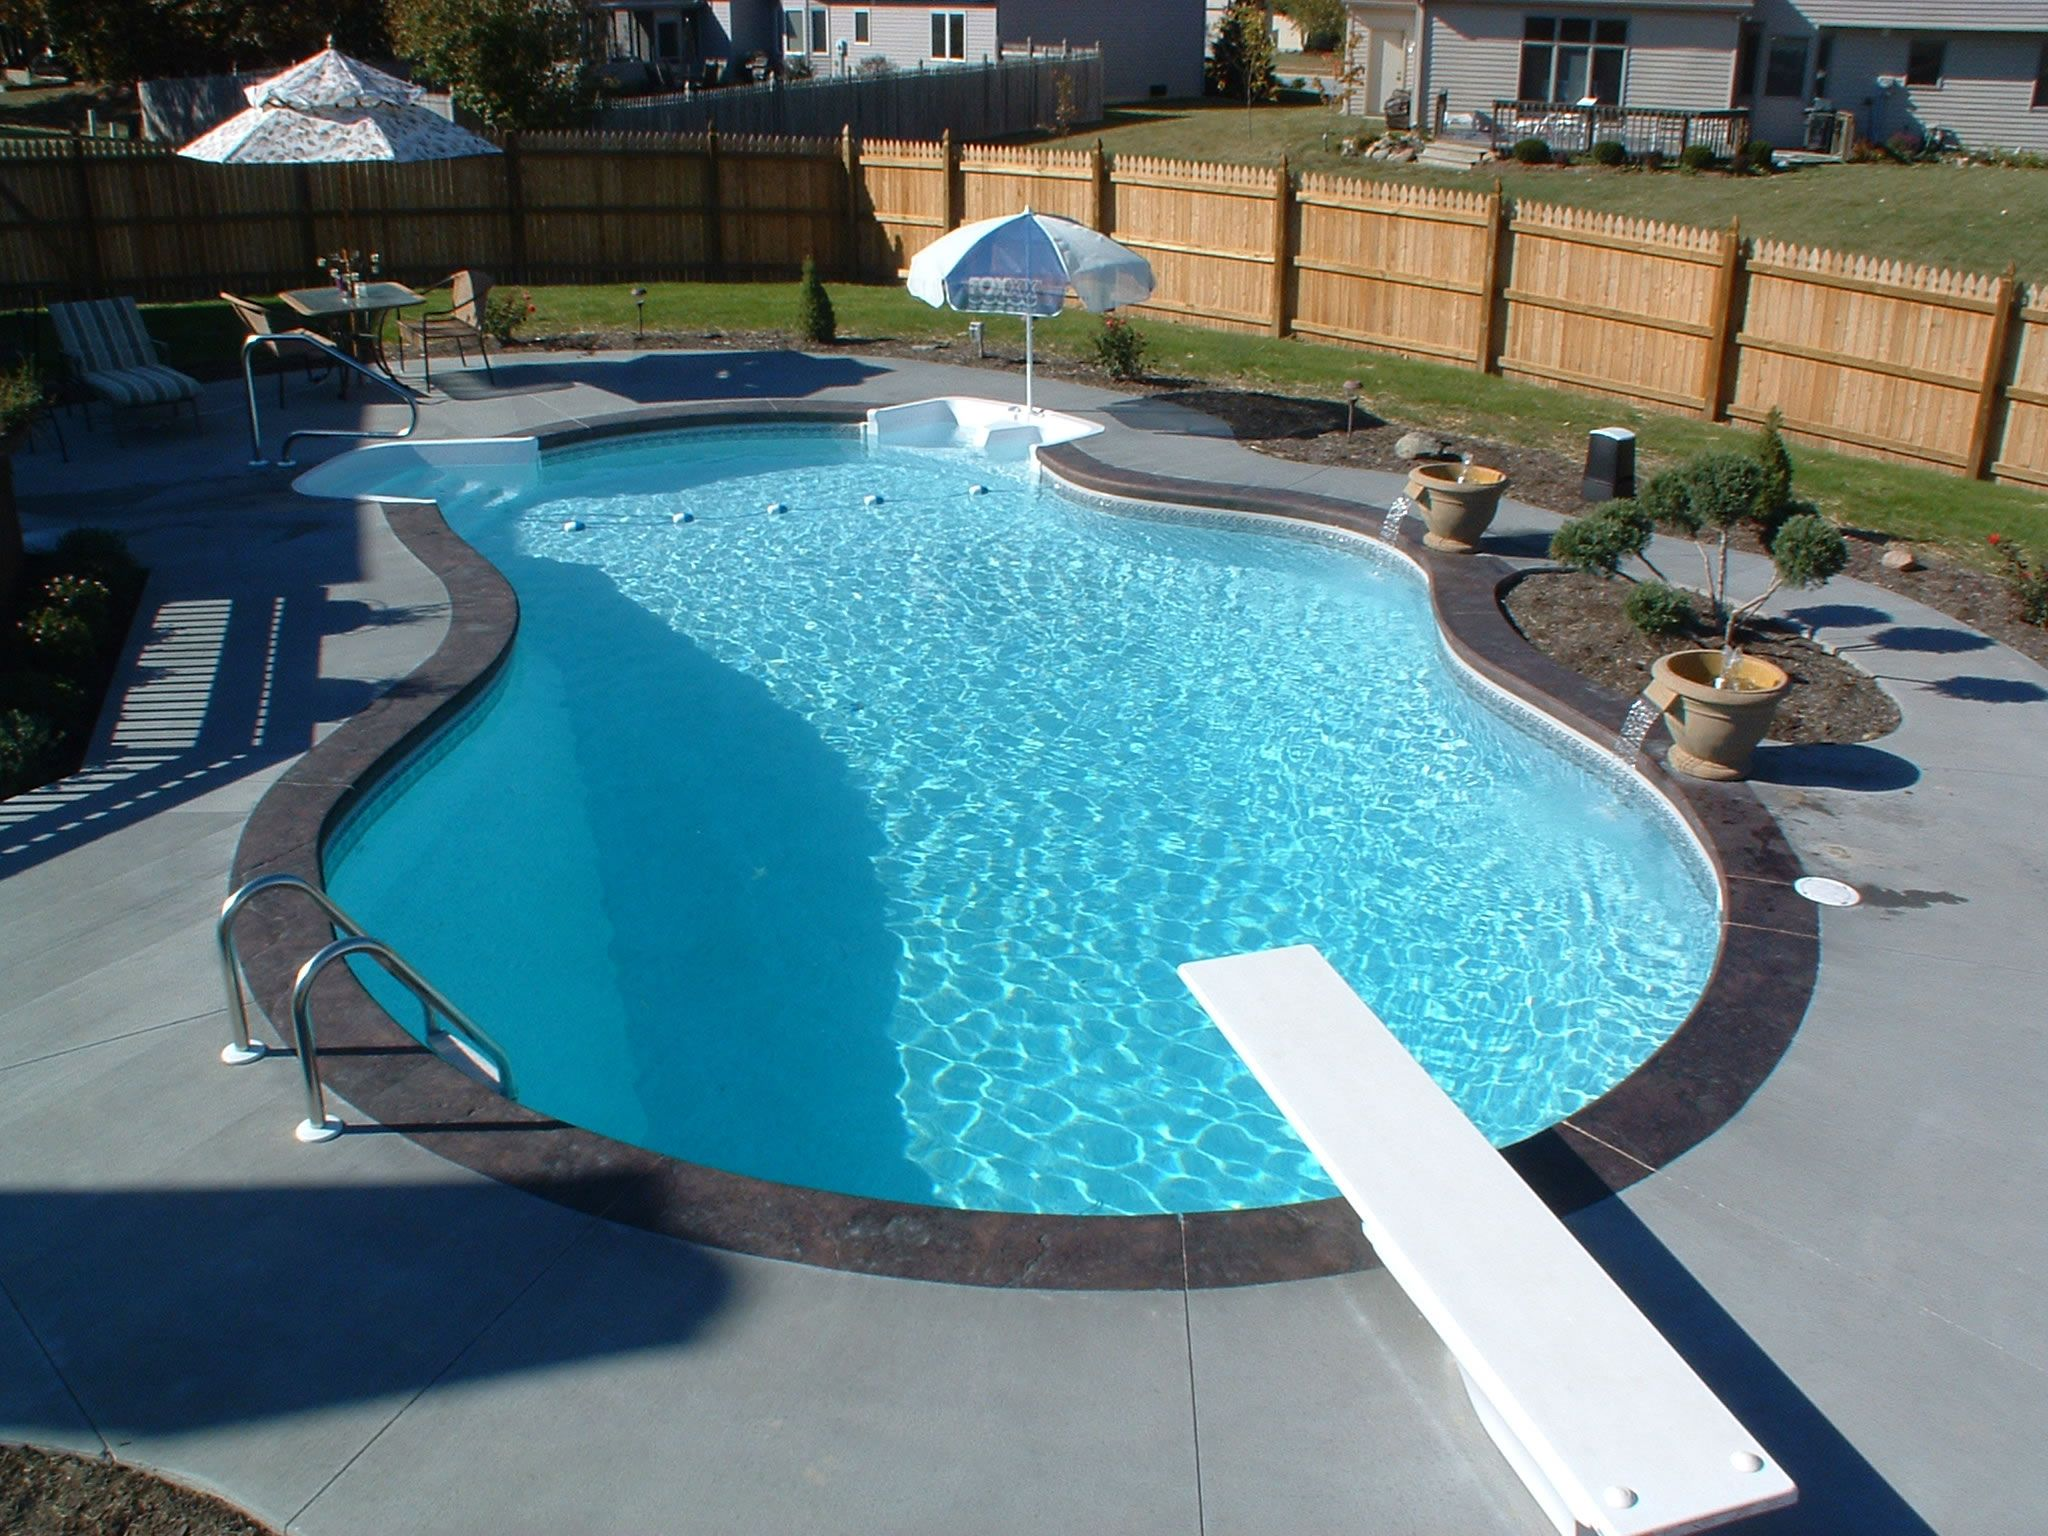 inground pool patio ideas pool patio ideas lovely about remodel home decor ideas with pool patio - Inground Pool Patio Ideas